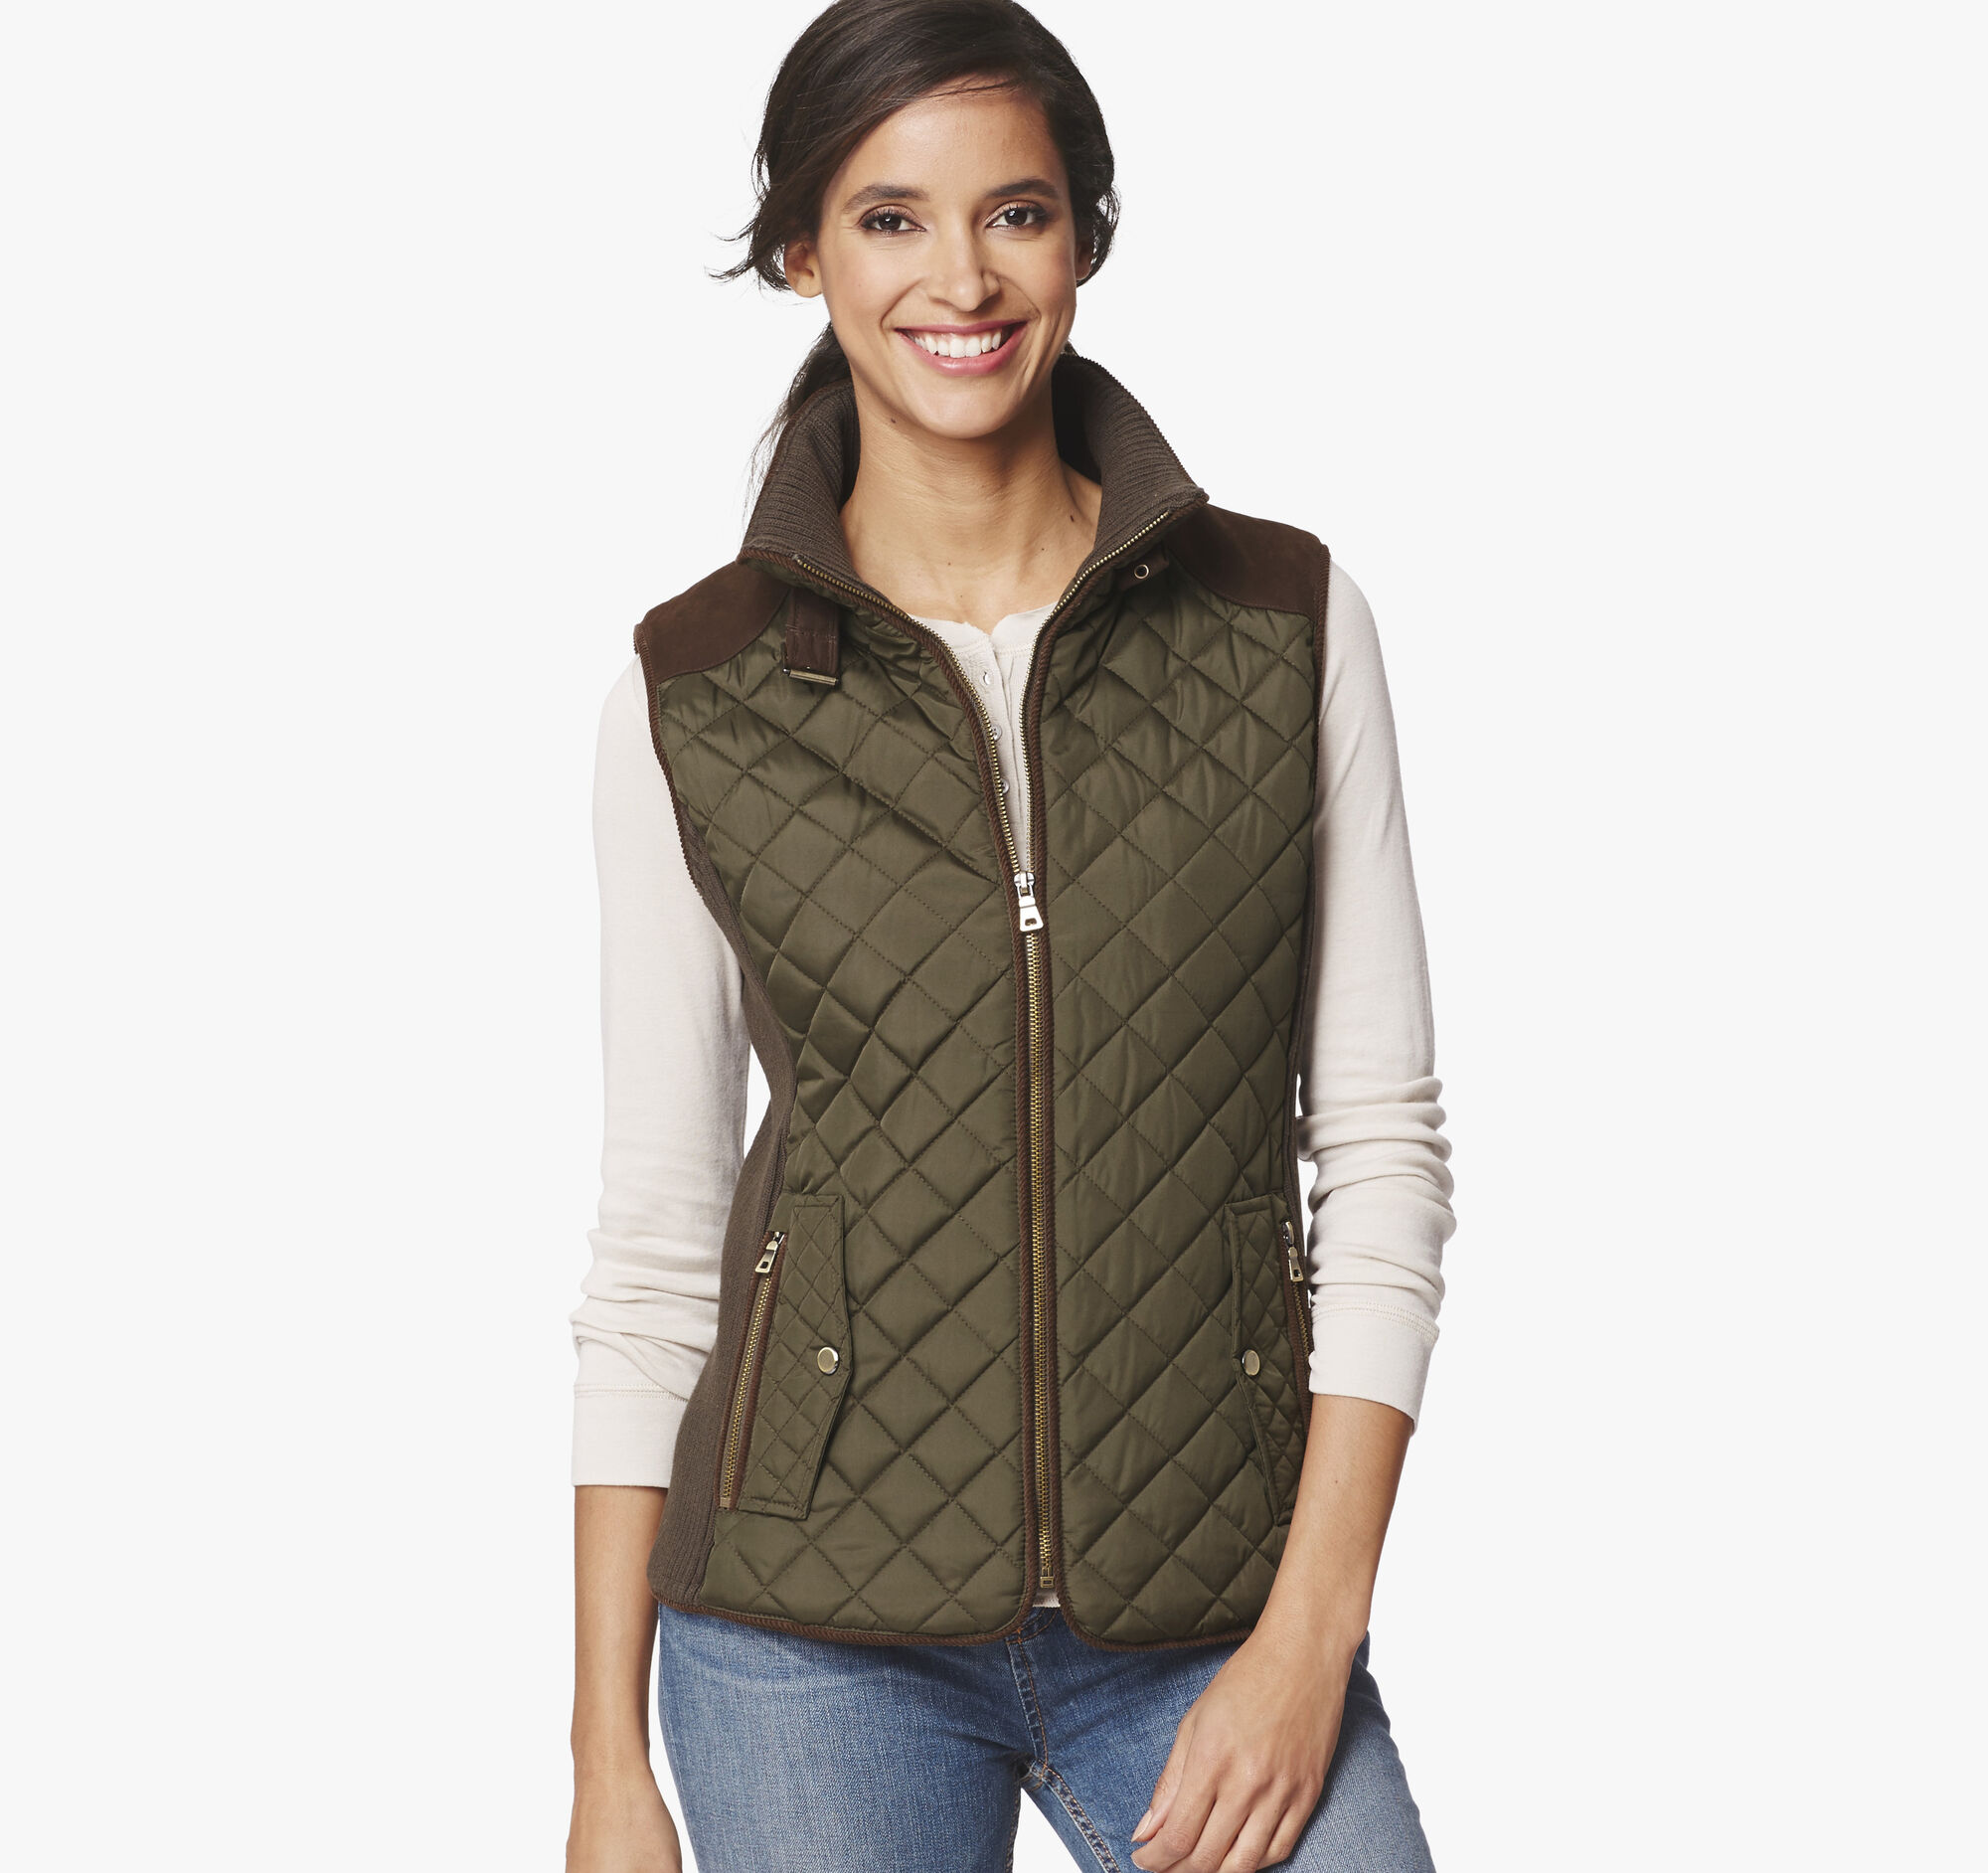 outerwear you grainfinished andrew own quilt york w in new detachable removable anson can on a faux colorblack distressed leather quilted that vest jacket c by its coats wear marc p features